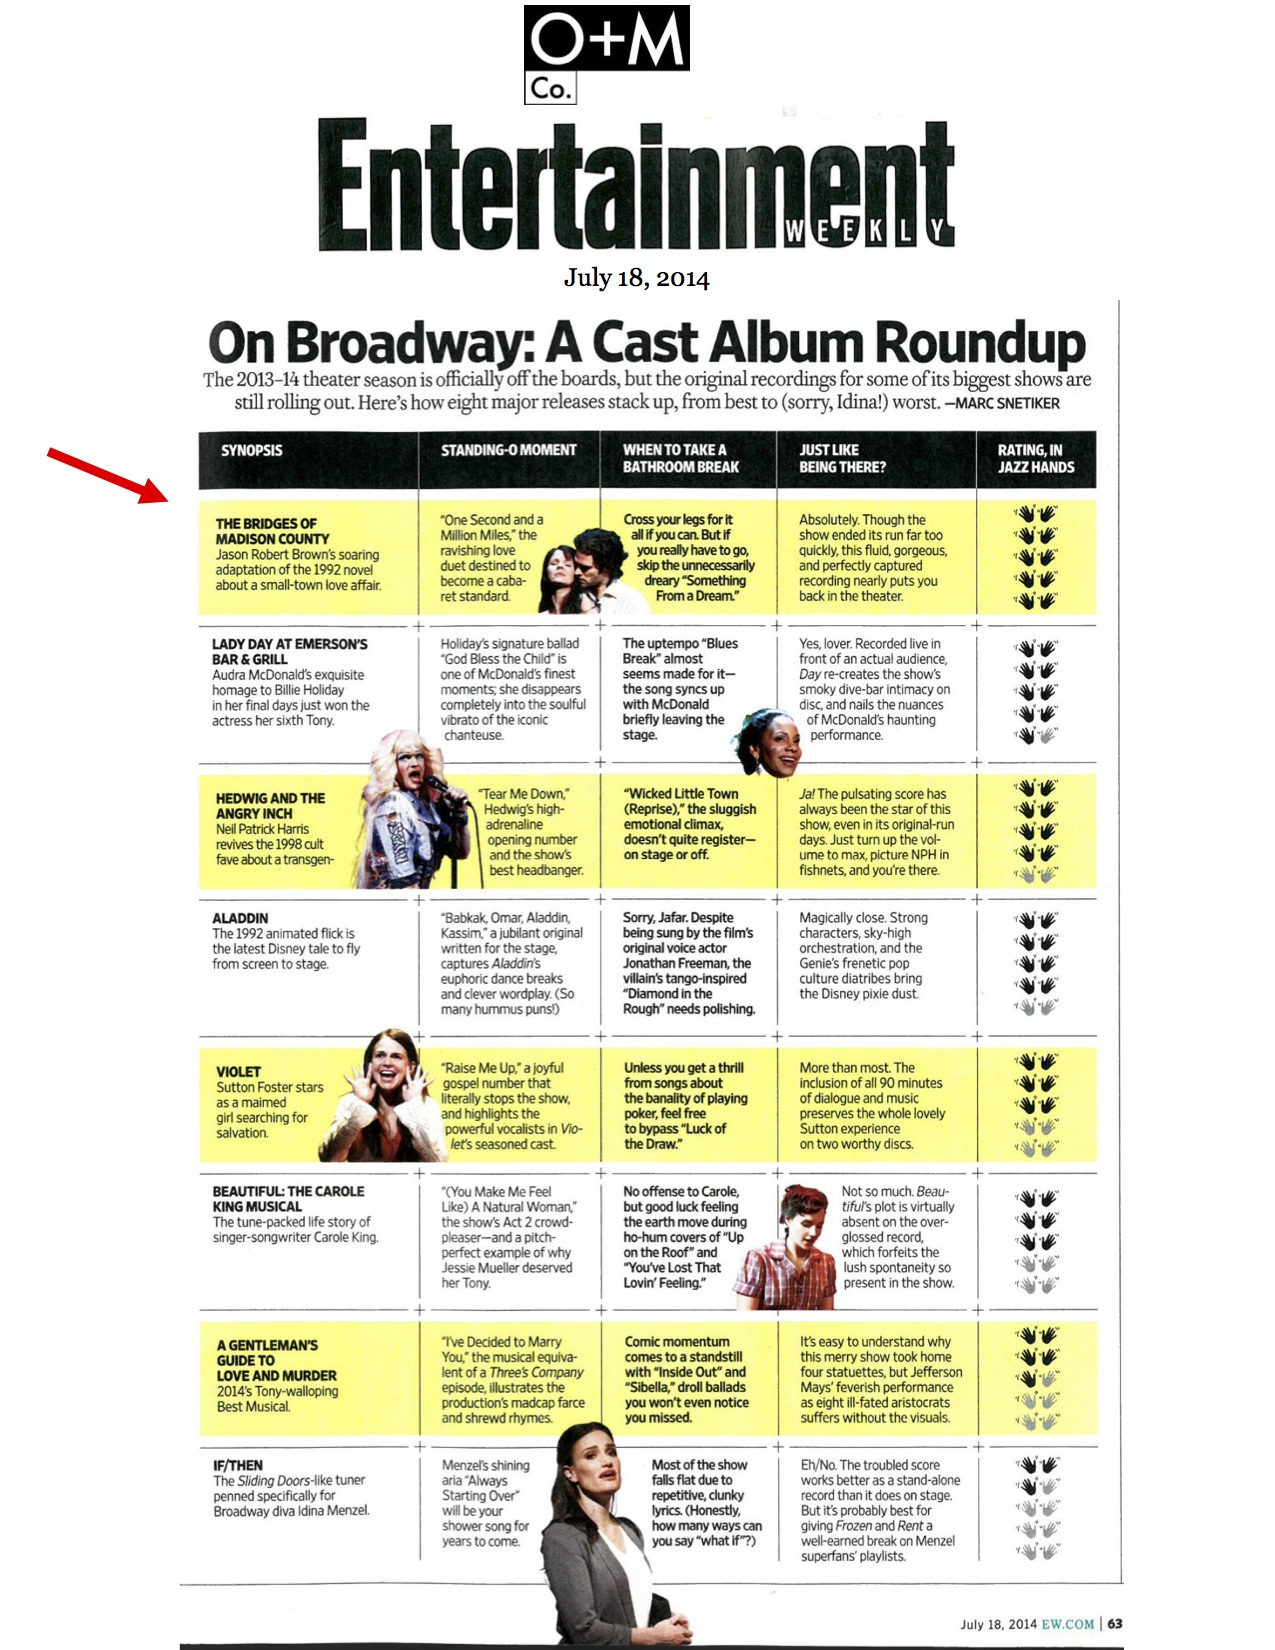 Entertainment Weekly 7 18 14 Bridges Cd Is Perfectly Captured